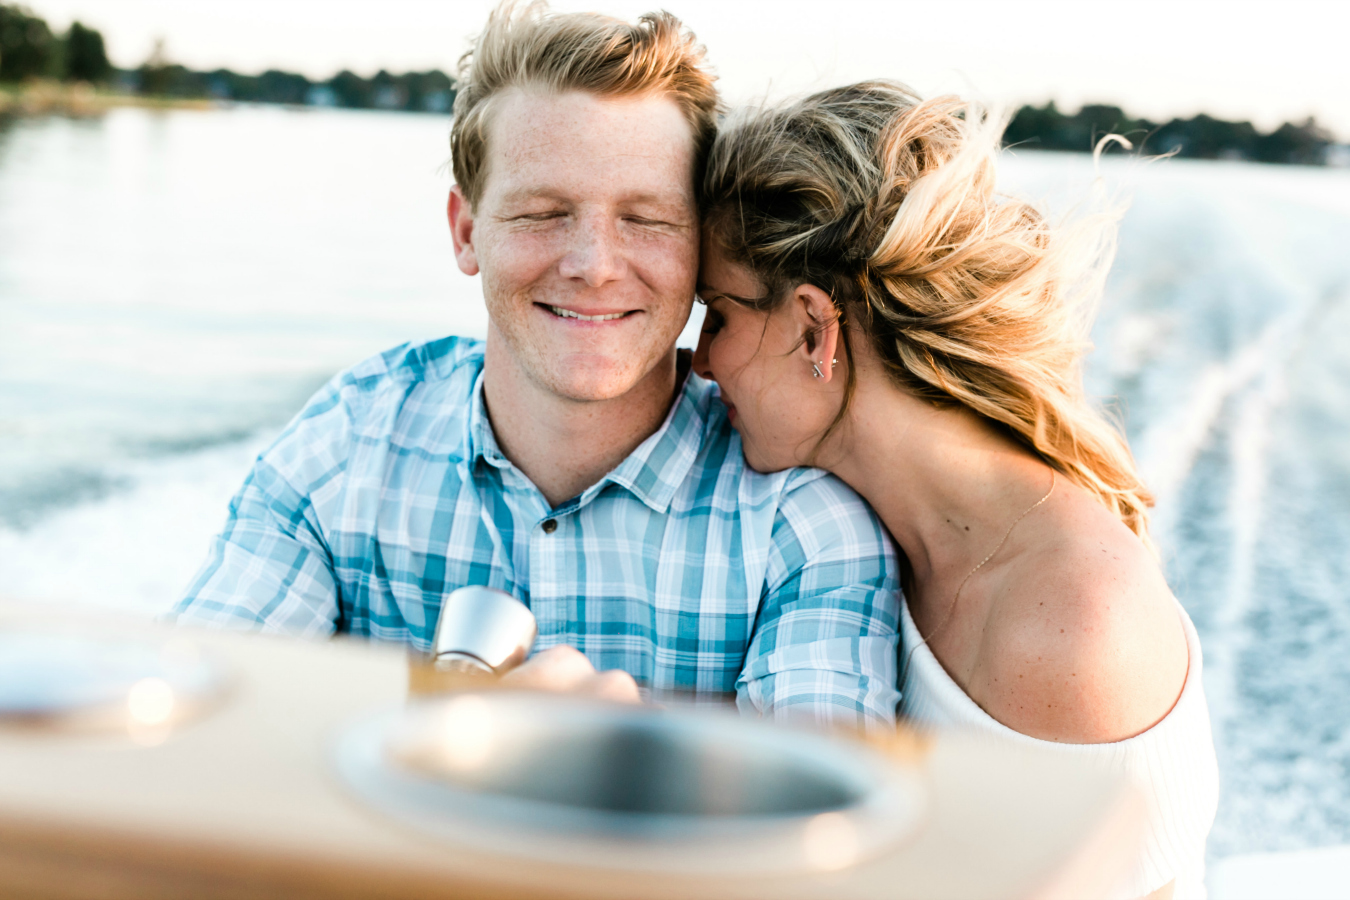 Lifestyle Engagement Session on Boat in Norfolk, Virginia